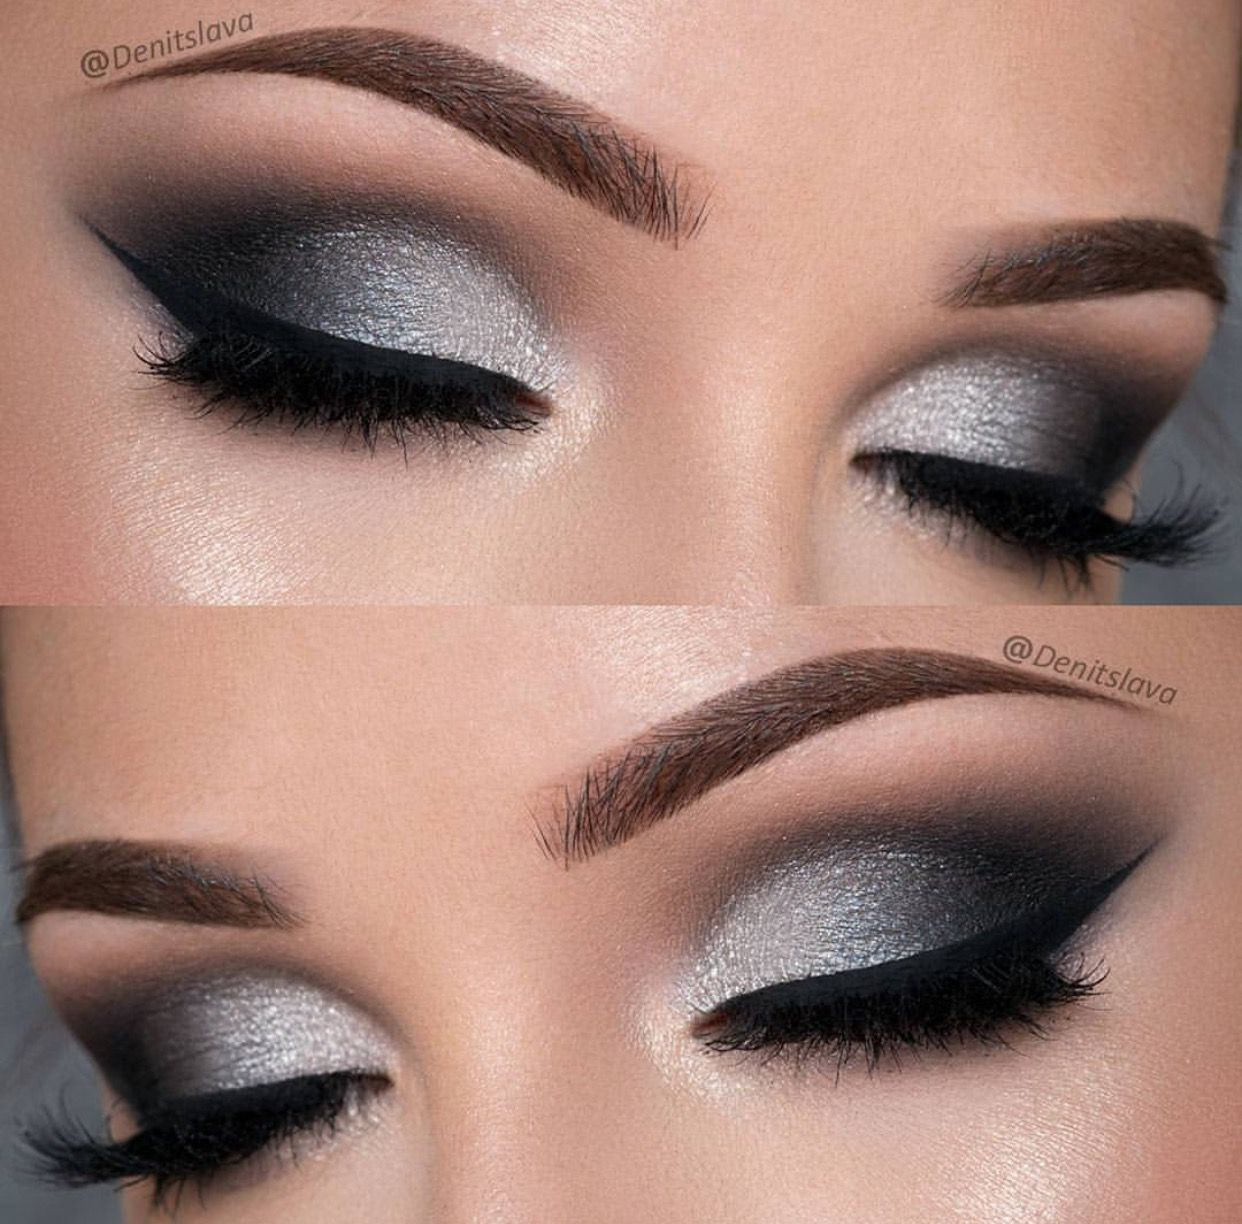 Black and silver eye makeup image by Angelita Rosales on